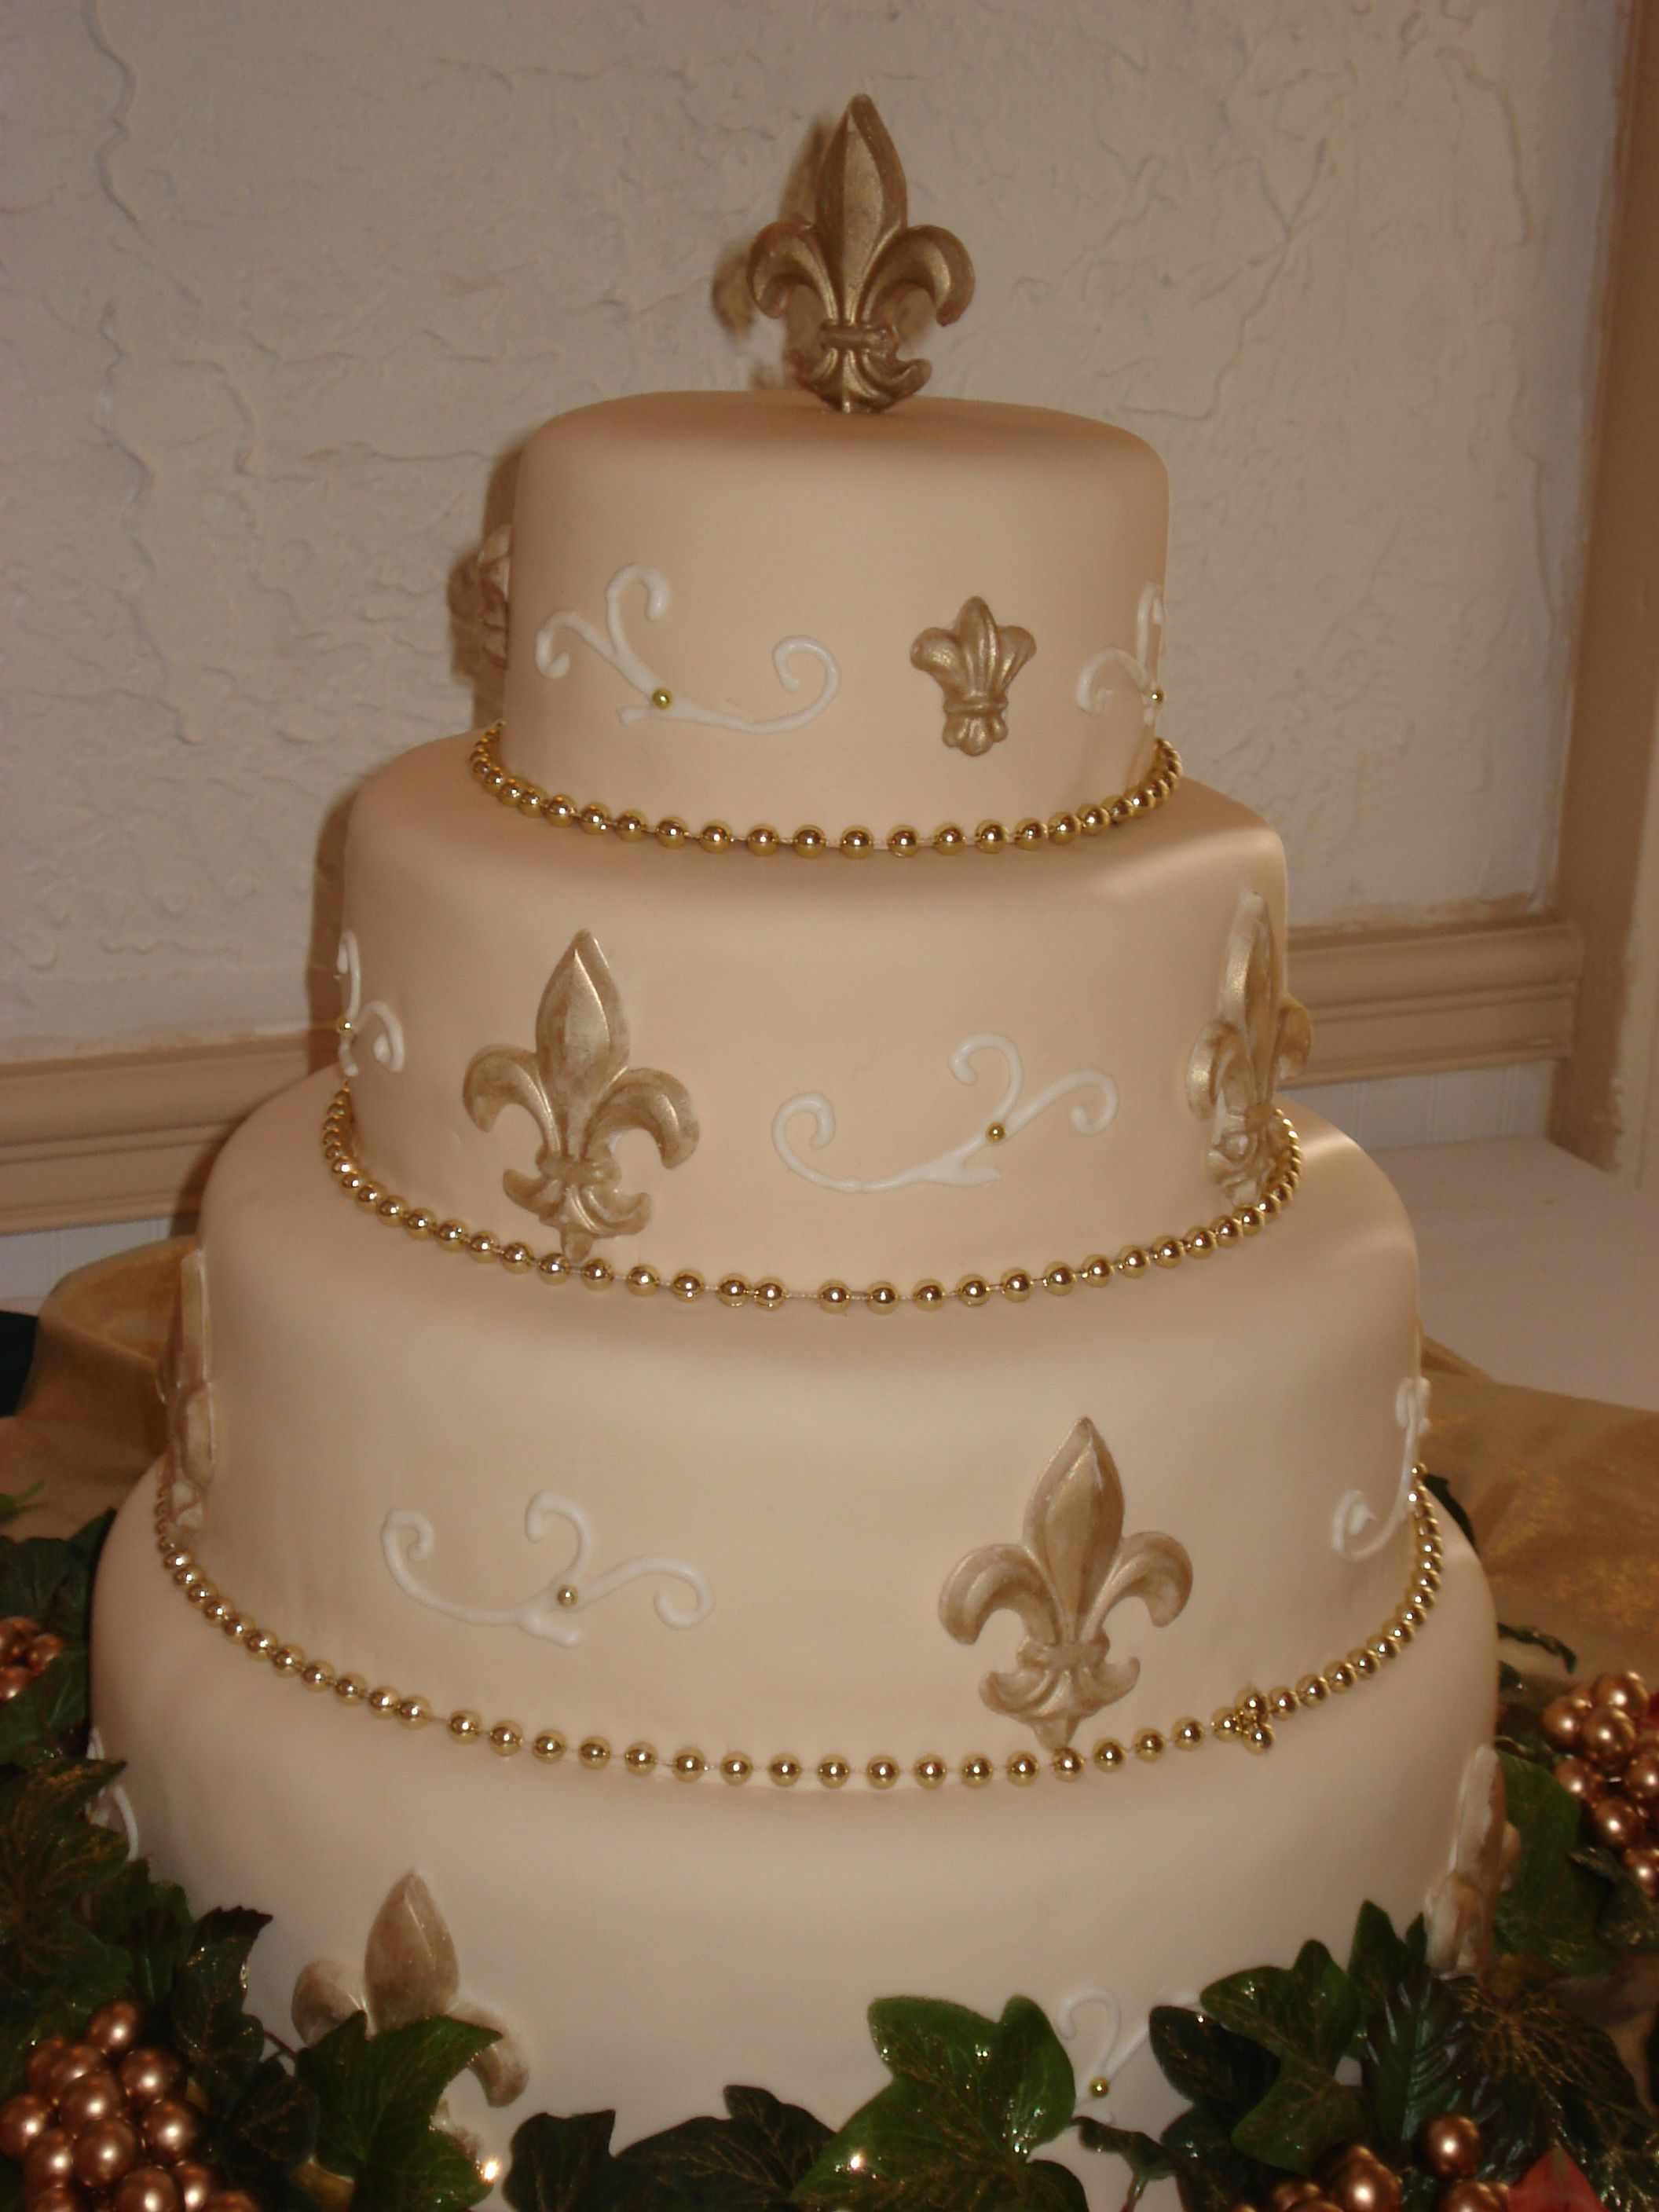 Fleur De Lis Cake For Our Anniversary Party In Nola Next Year Joe And I